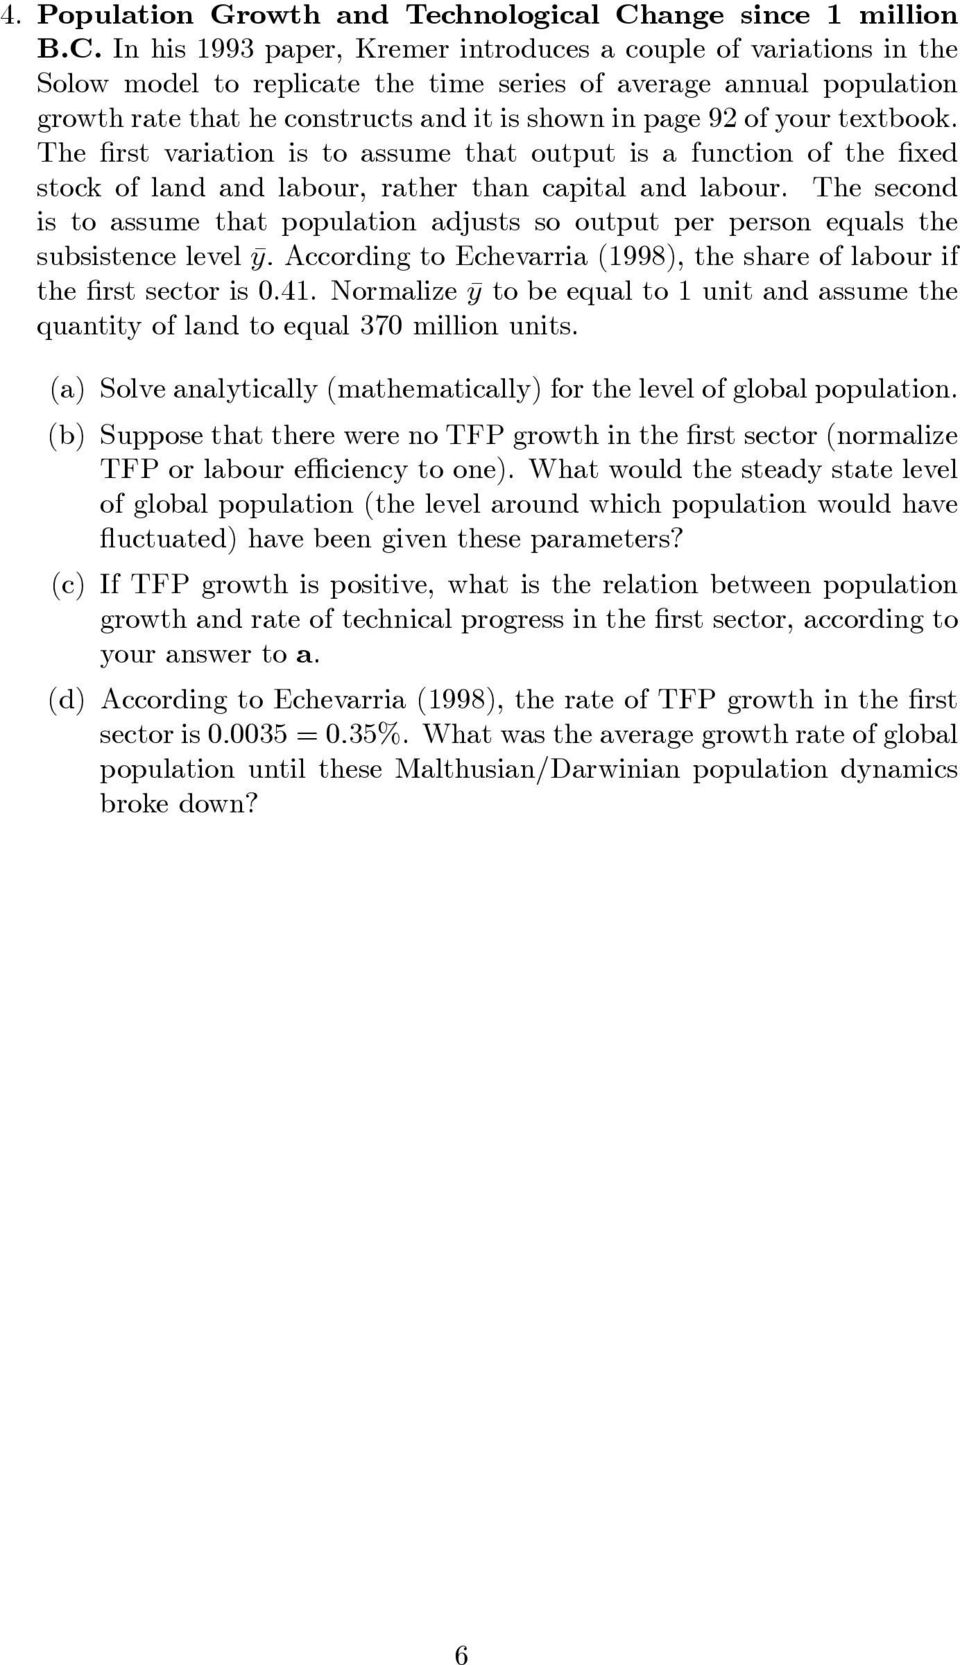 In his 1993 paper, Kremer introduces a couple of variations in the Solow model to replicate the time series of average annual population growth rate that he constructs and it is shown in page 92 of